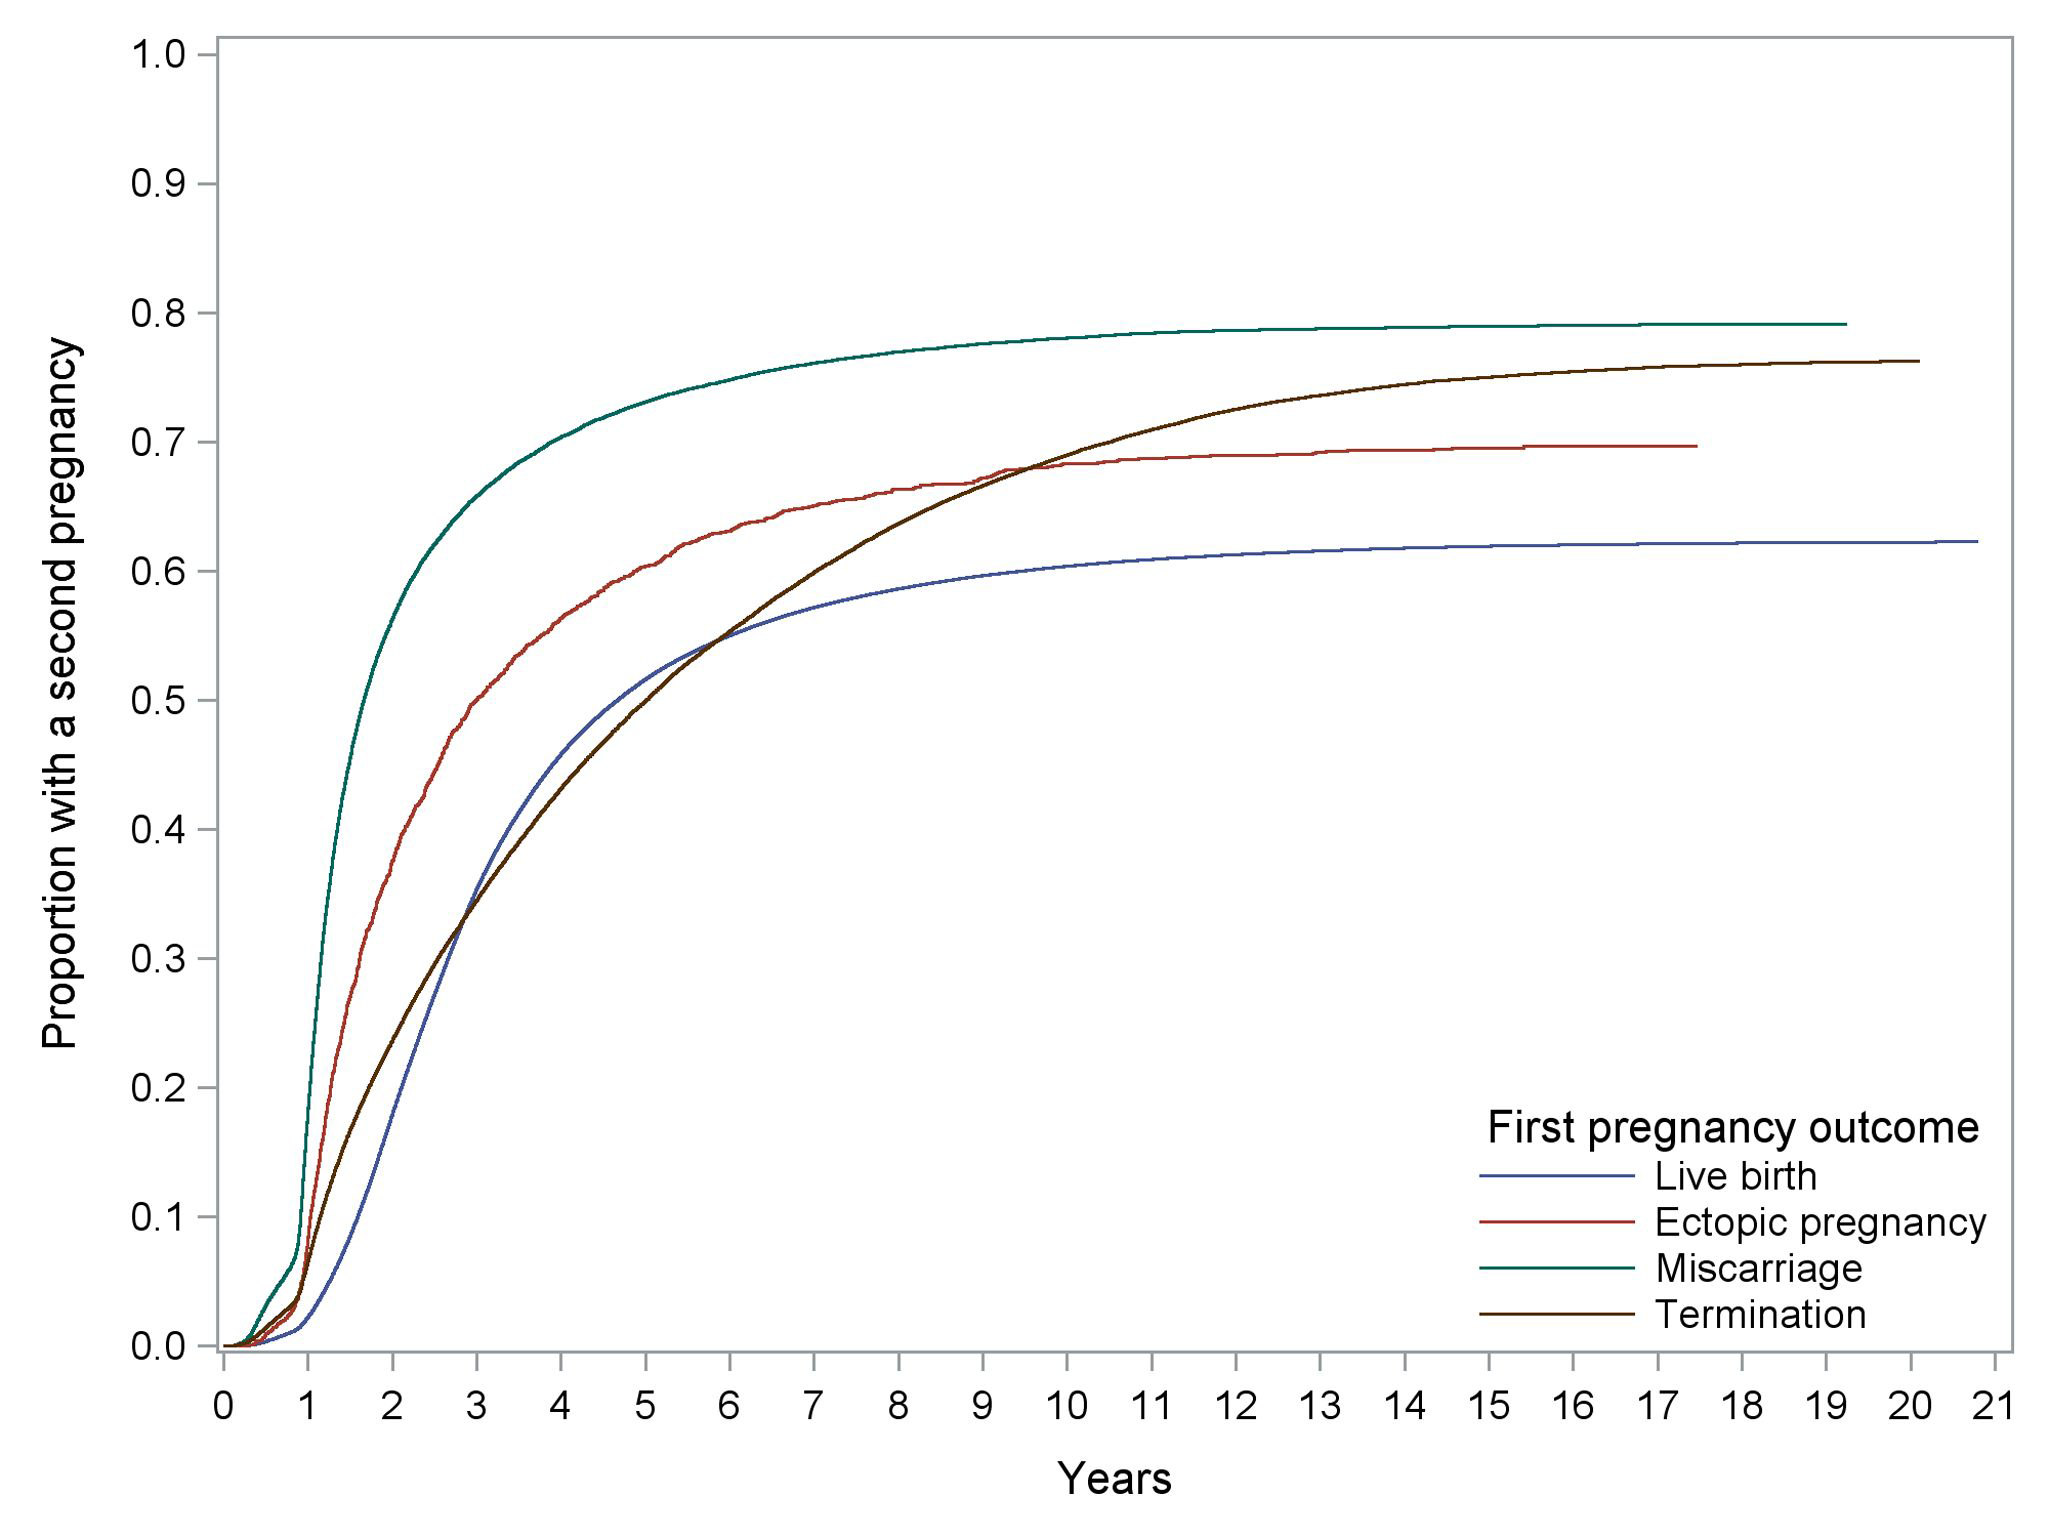 Kaplan-Meier curves of time to any second pregnancy following different first pregnancy outcomes.